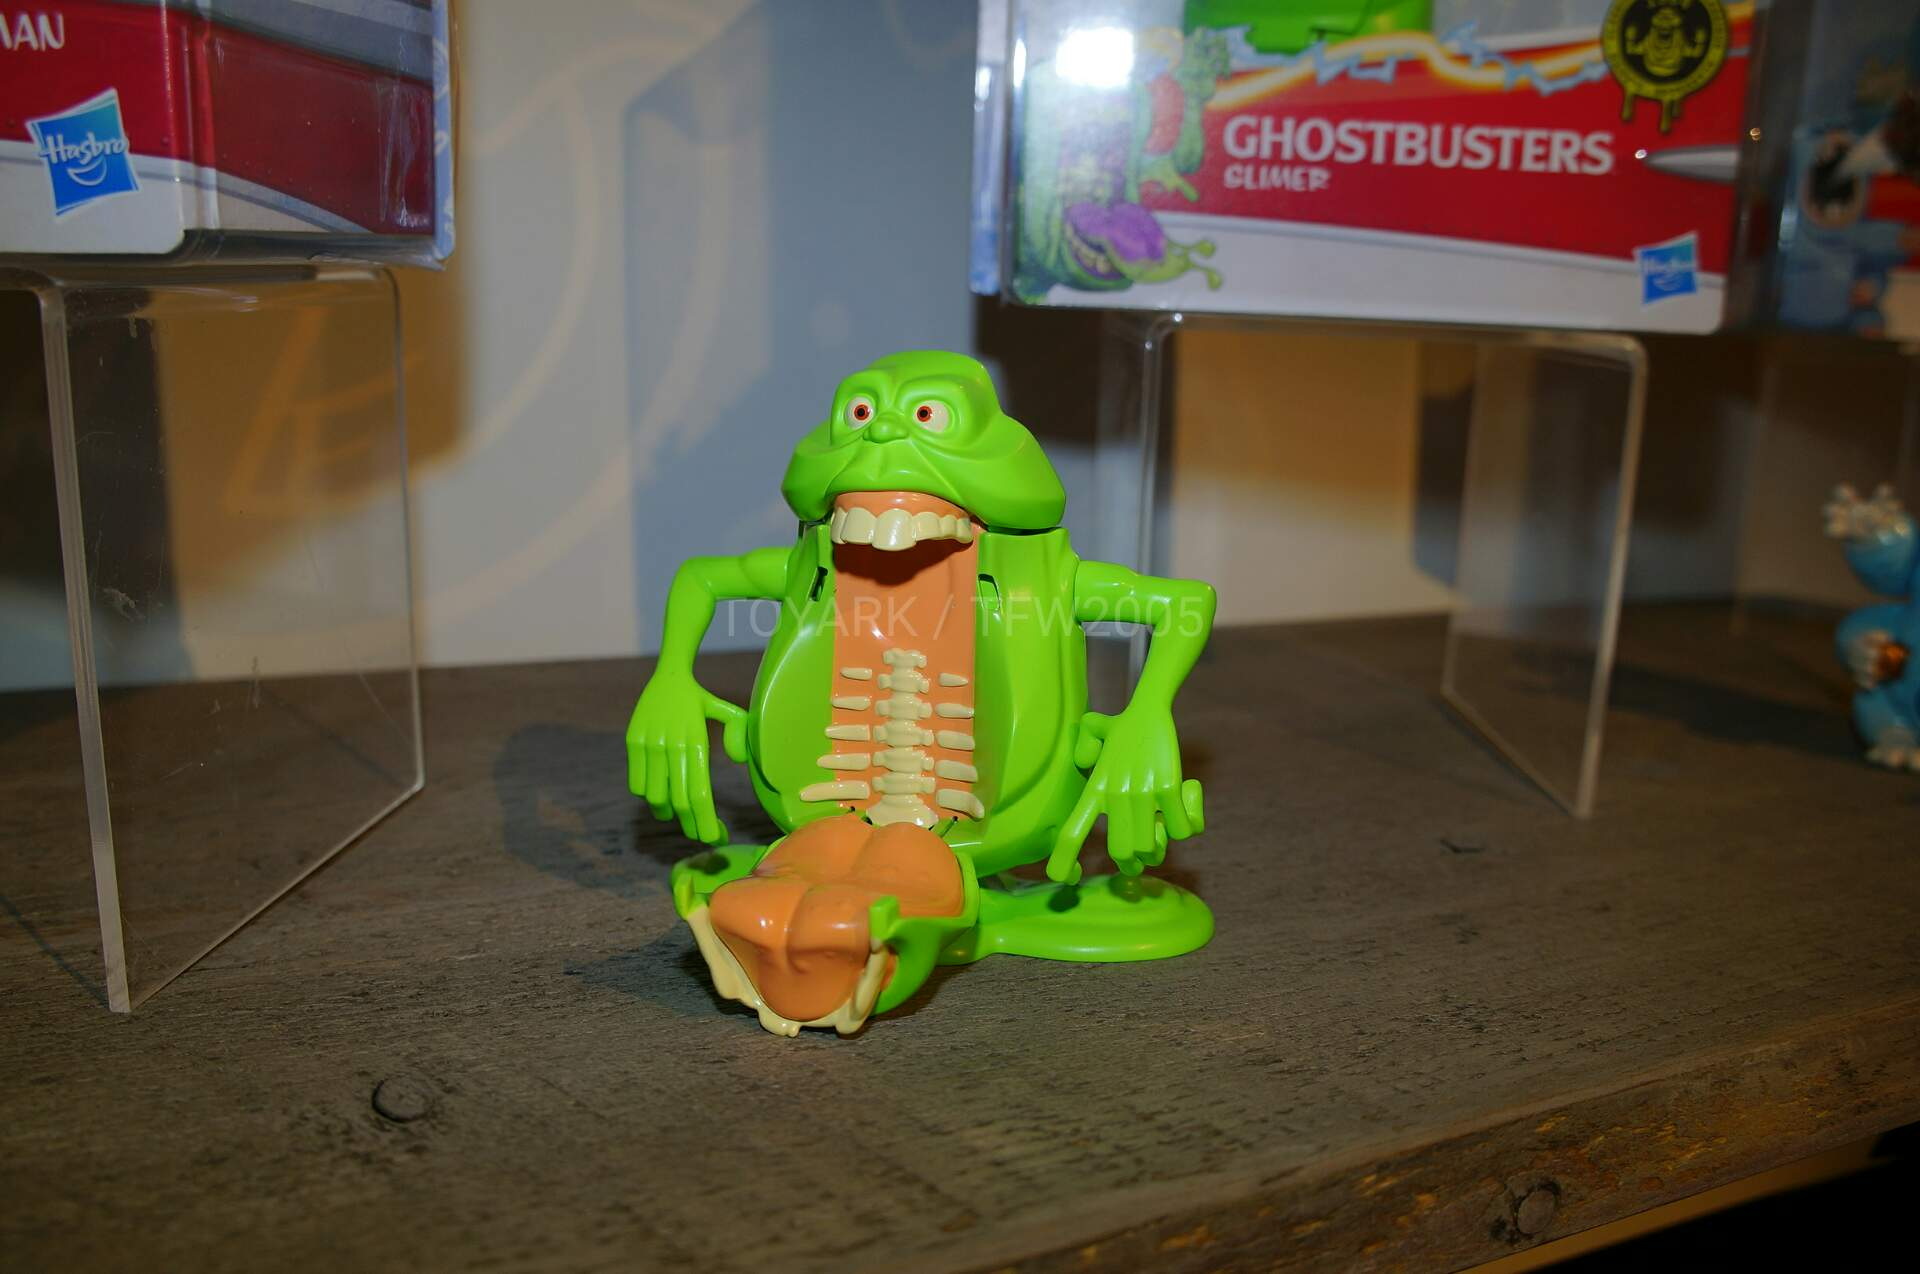 Toy-Fair-2020-Hasbro-Ghostbusters-050.jpg